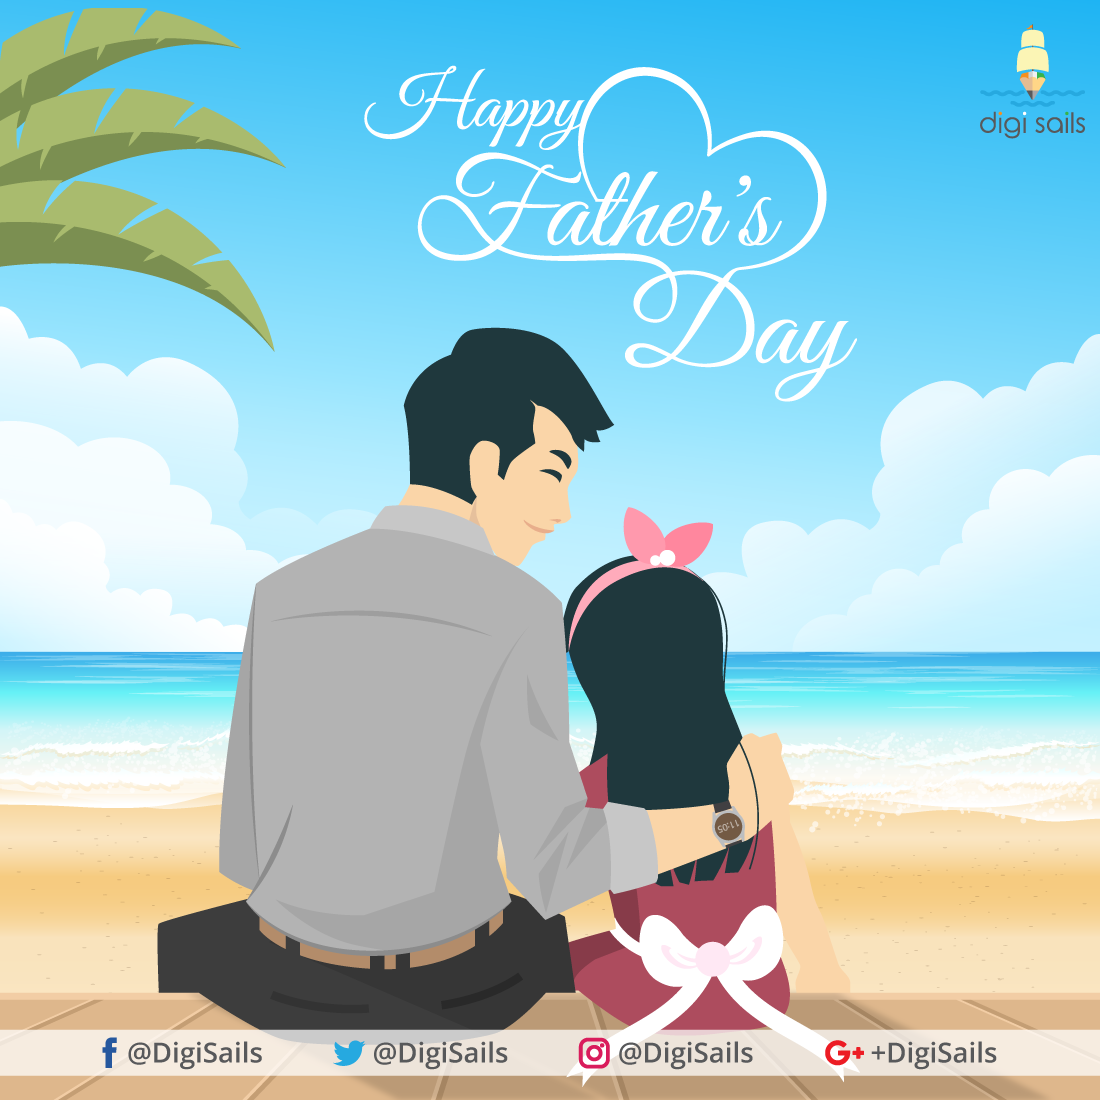 We Wish You A Very Happy Fathers Day Digi Sails Medium